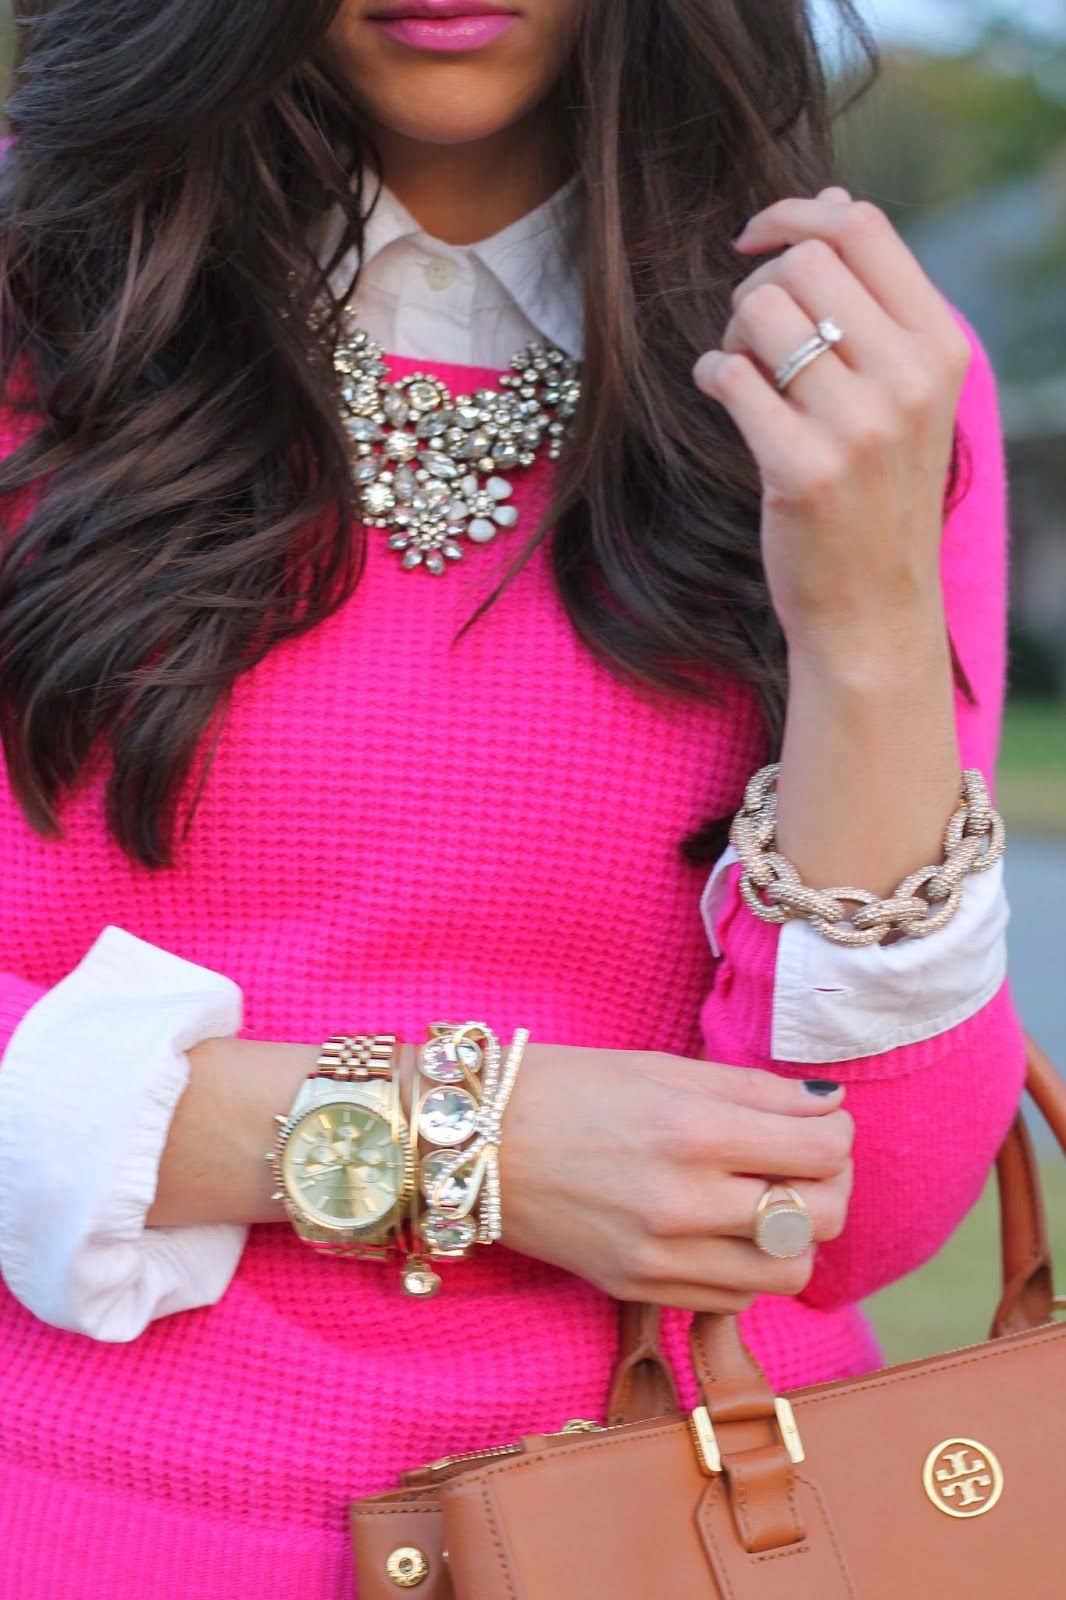 C l a s s y in the city | fashion | women | Pinterest | Statement ...